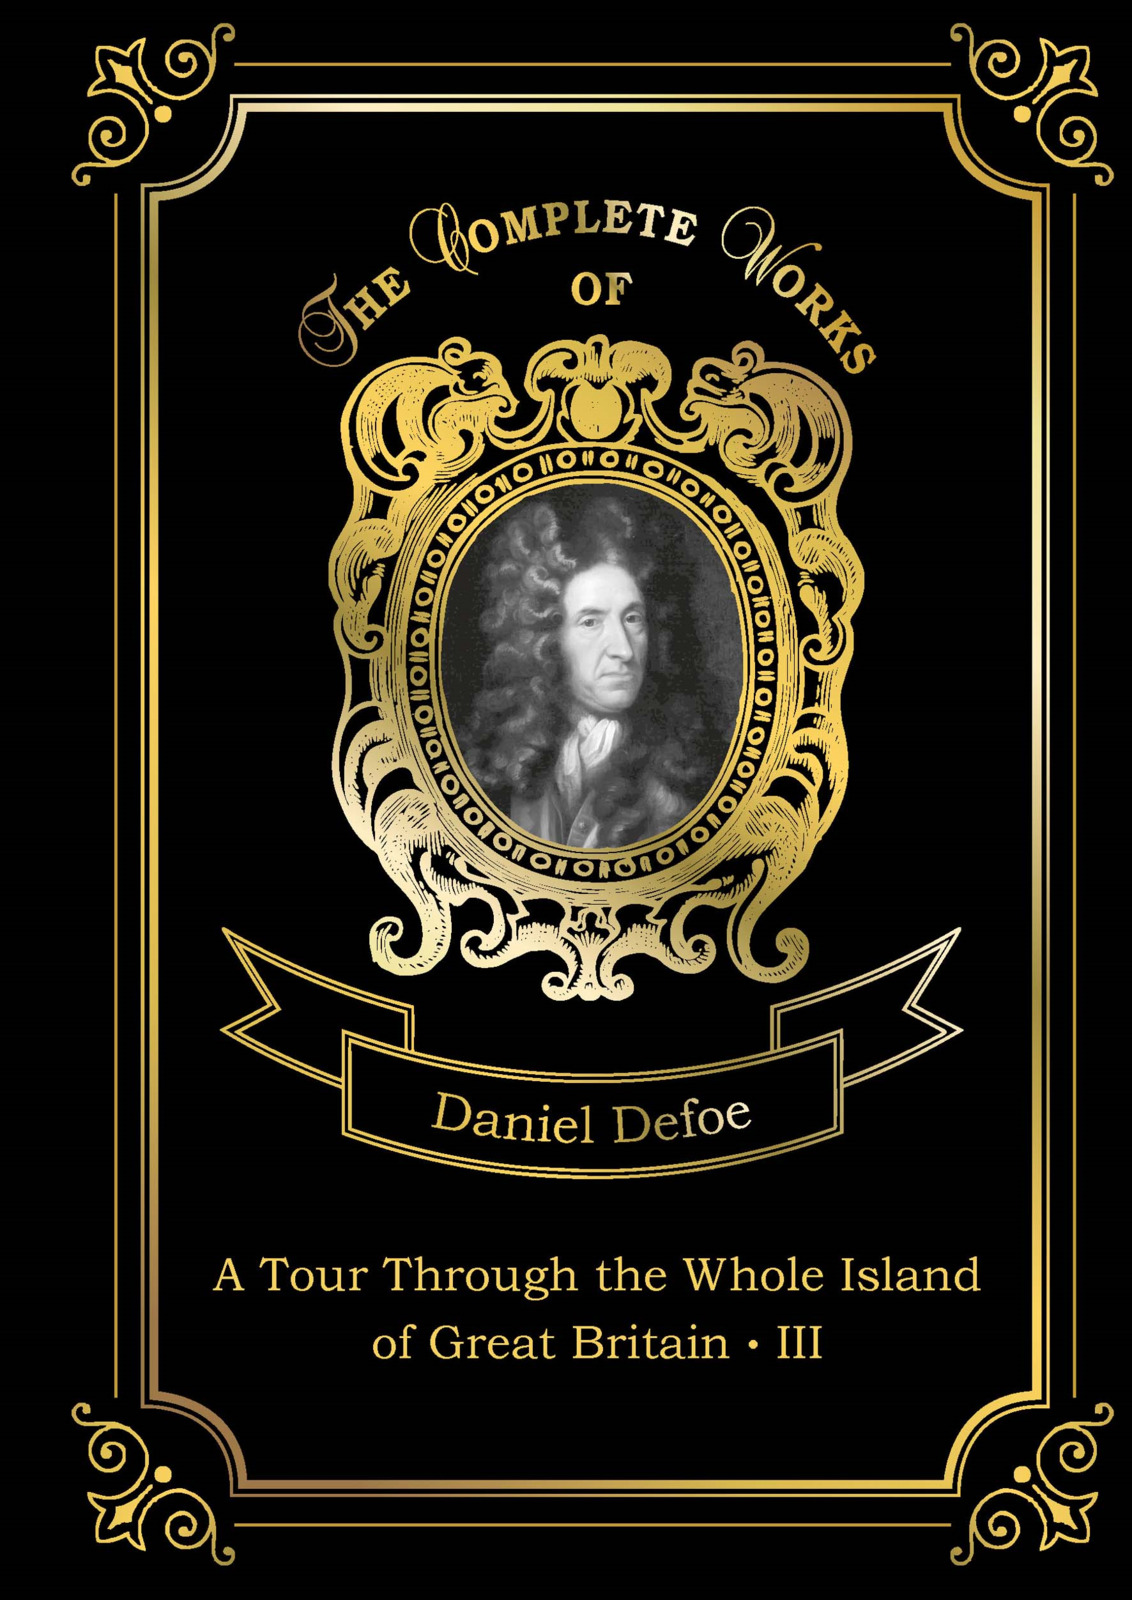 Defoe Daniel A Tour Through the Whole Island of Great Britain III даниэль дефо a tour through the whole island of great britain iii